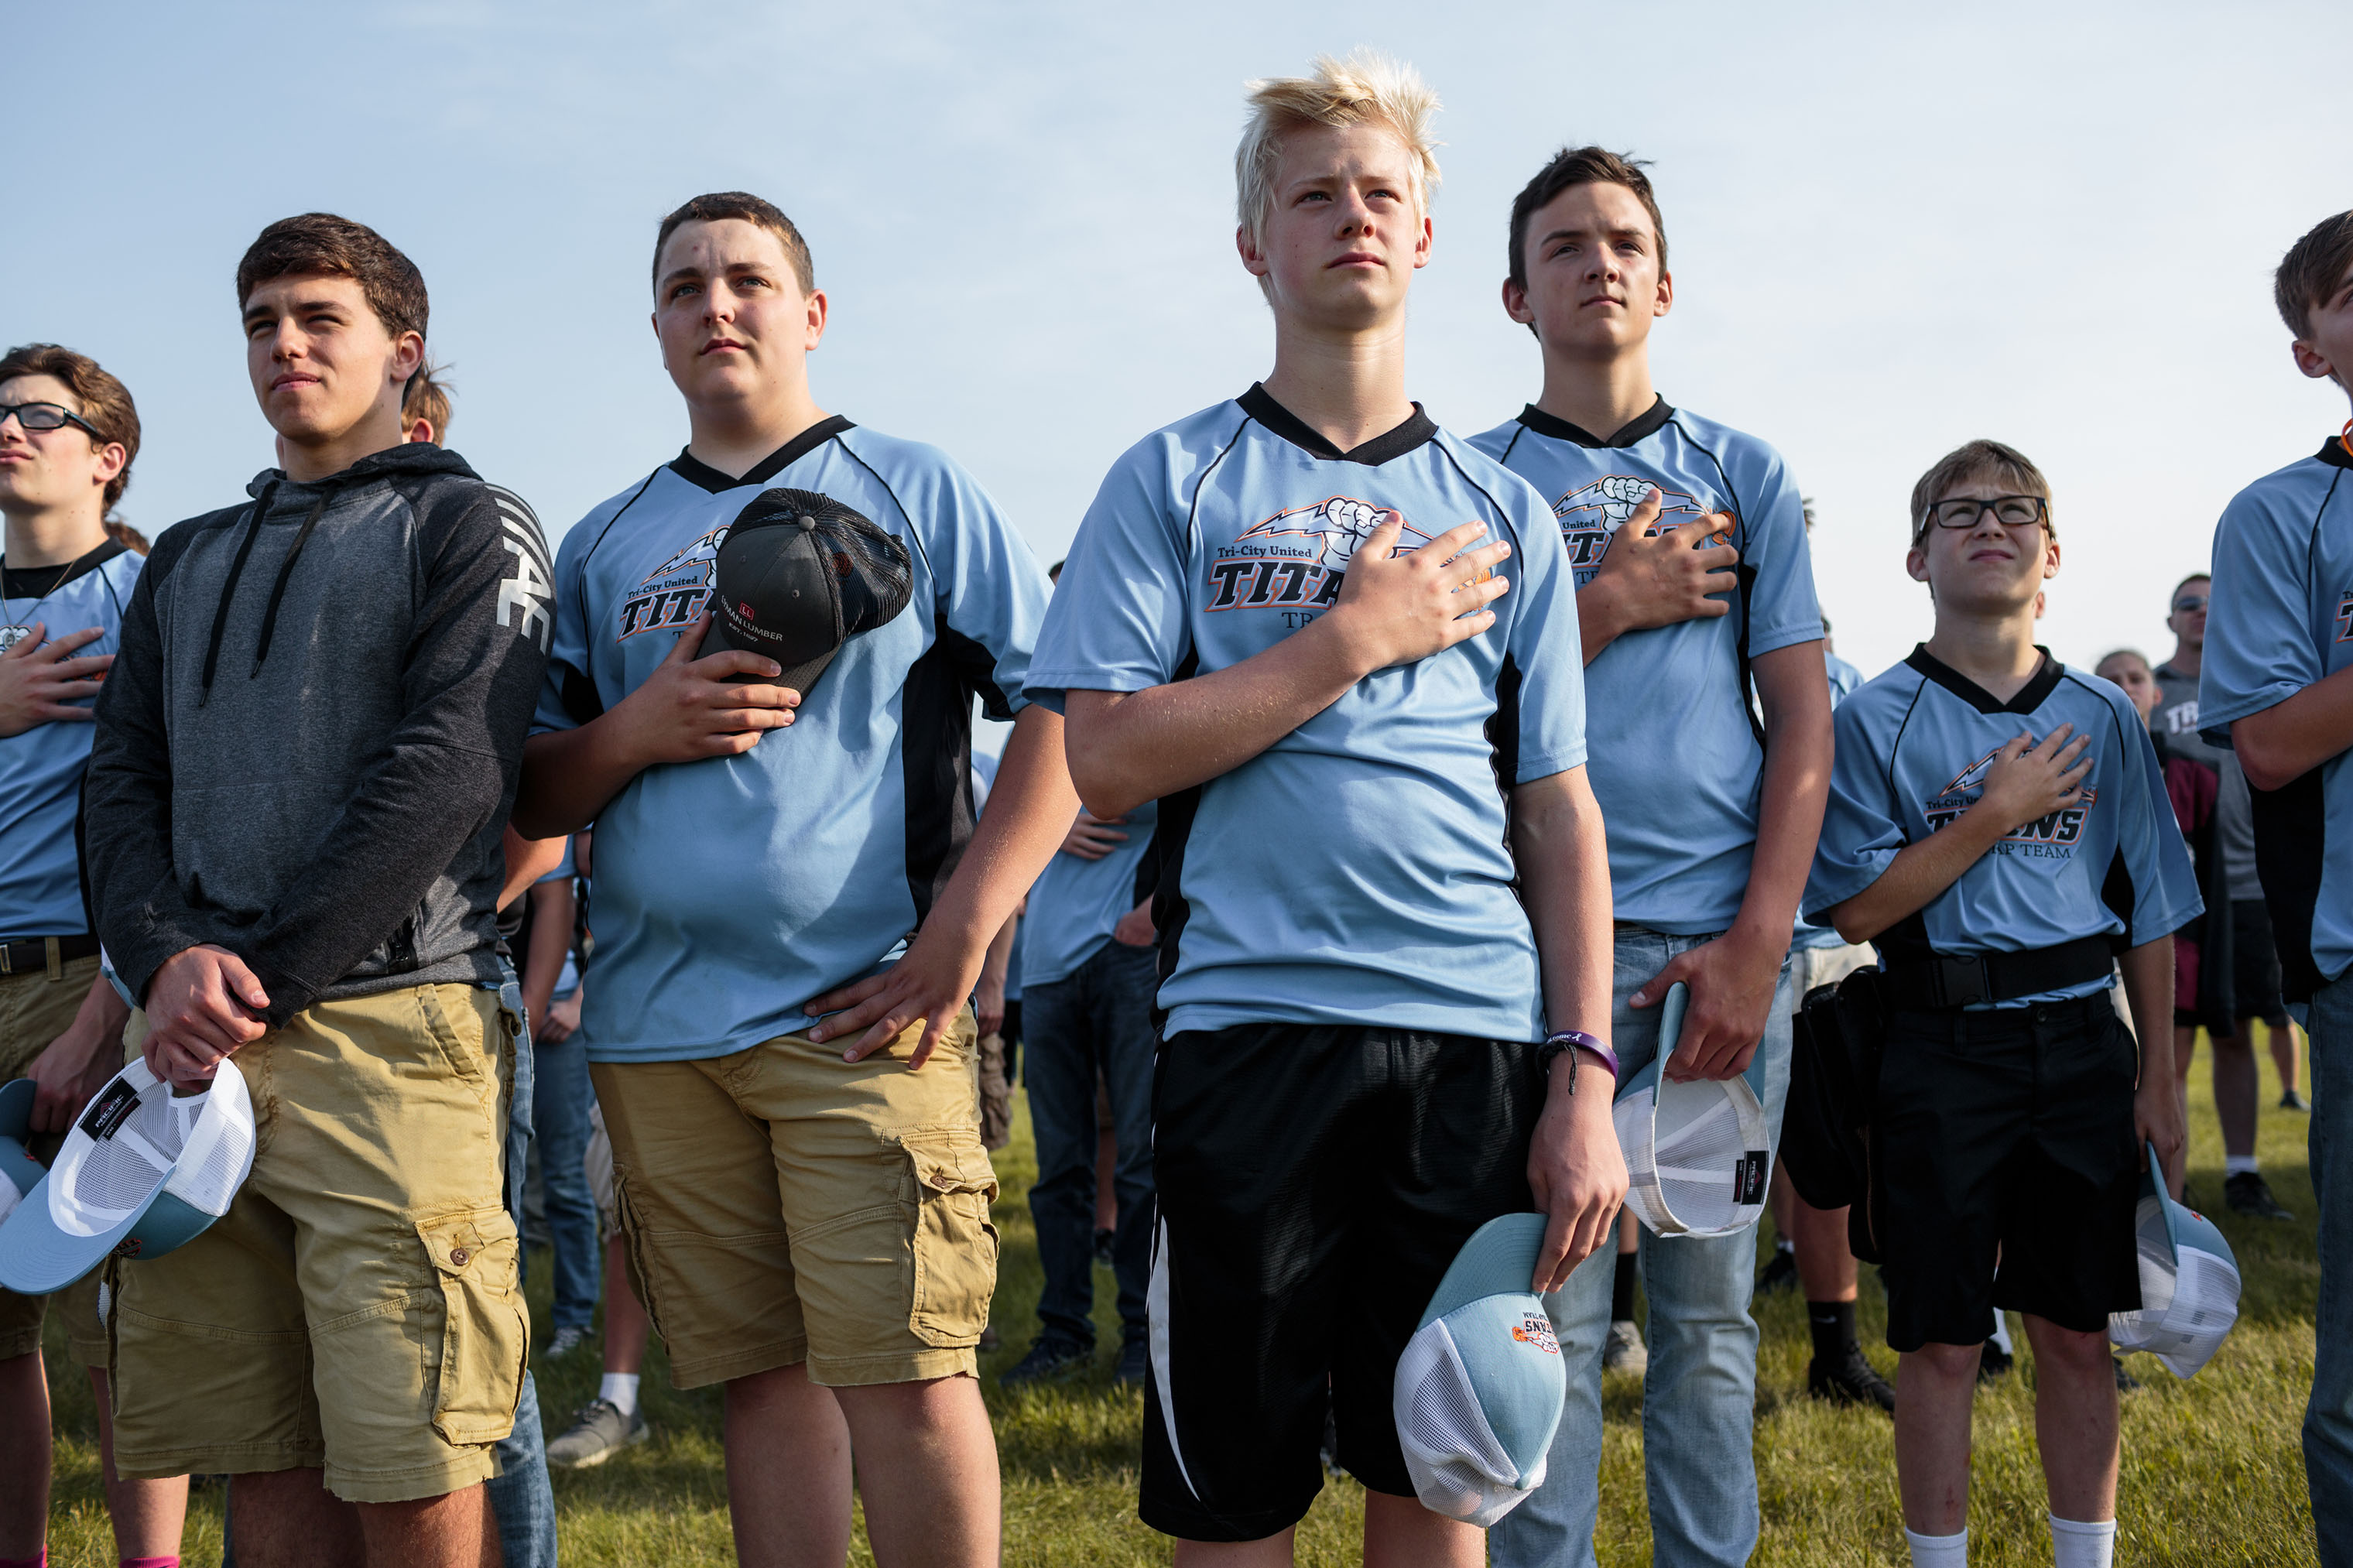 Students from Tri-City United High School stand for the Pledge of Allegiance early in the morning on June 15, 2018, before beginning to compete in the annual trap shooting championship in Alexandria, Minnesota.